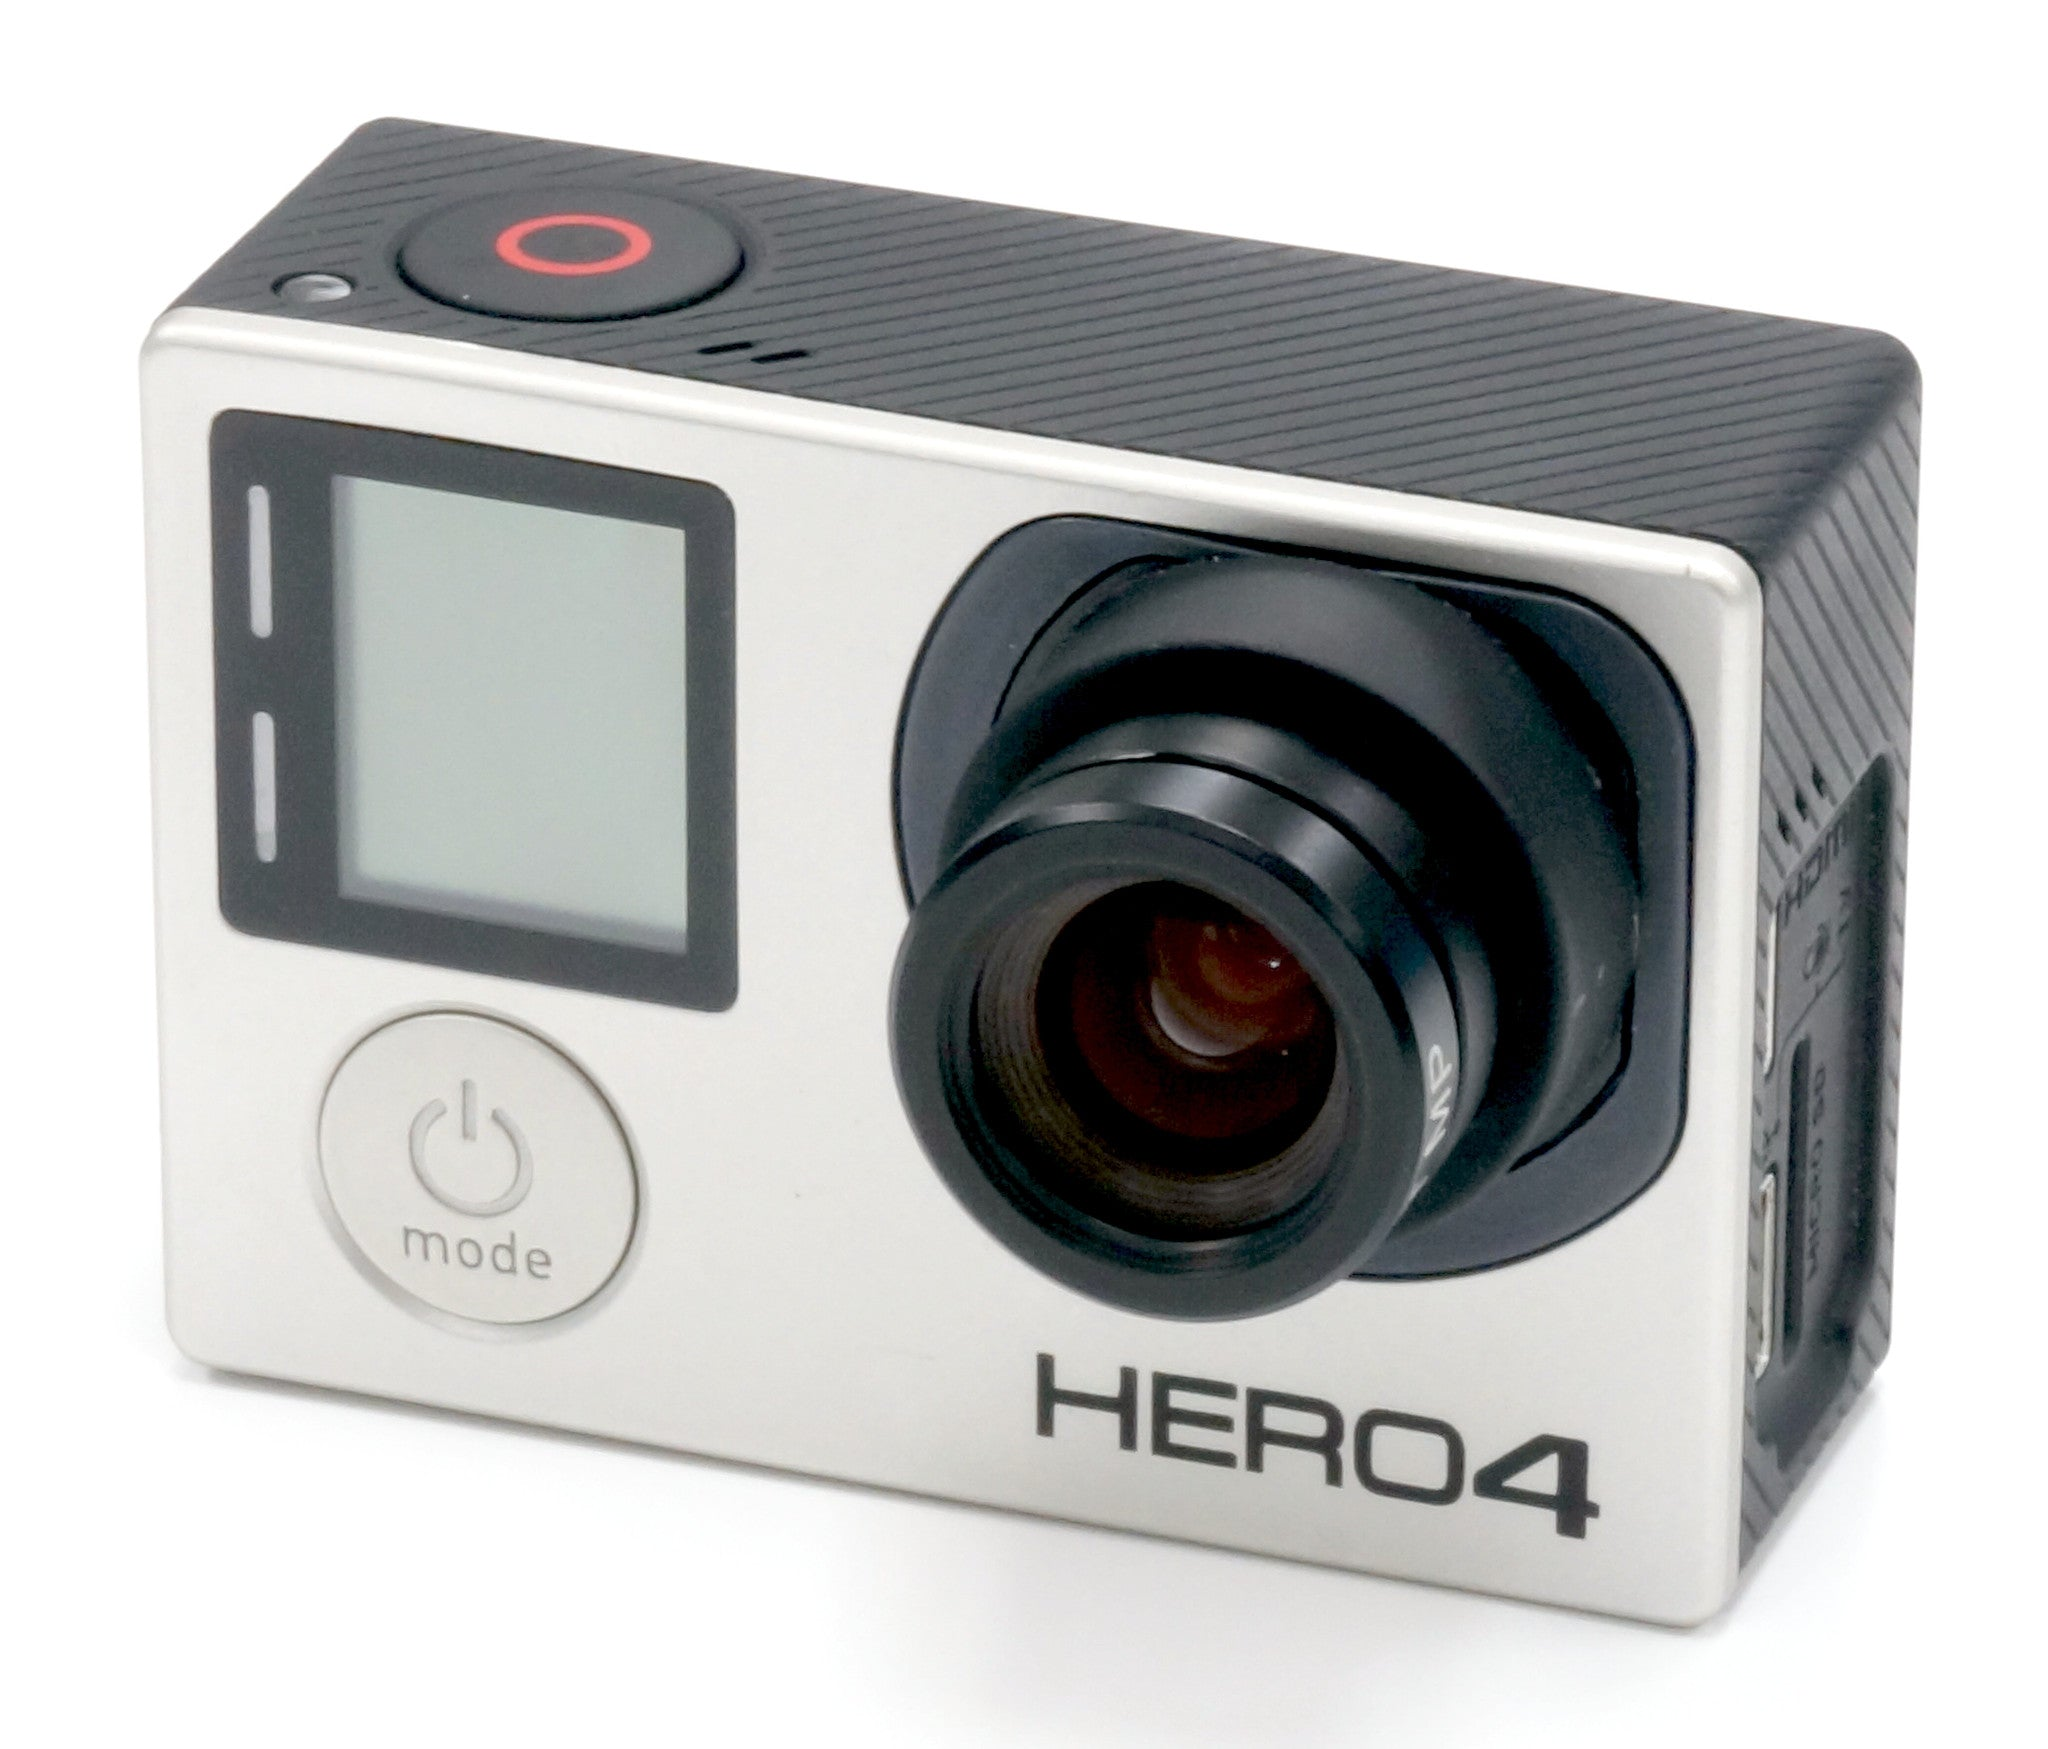 PeauPro47<br/>7.2mm (40mm) f/2.5<br/>GoPro Hero 4 Black